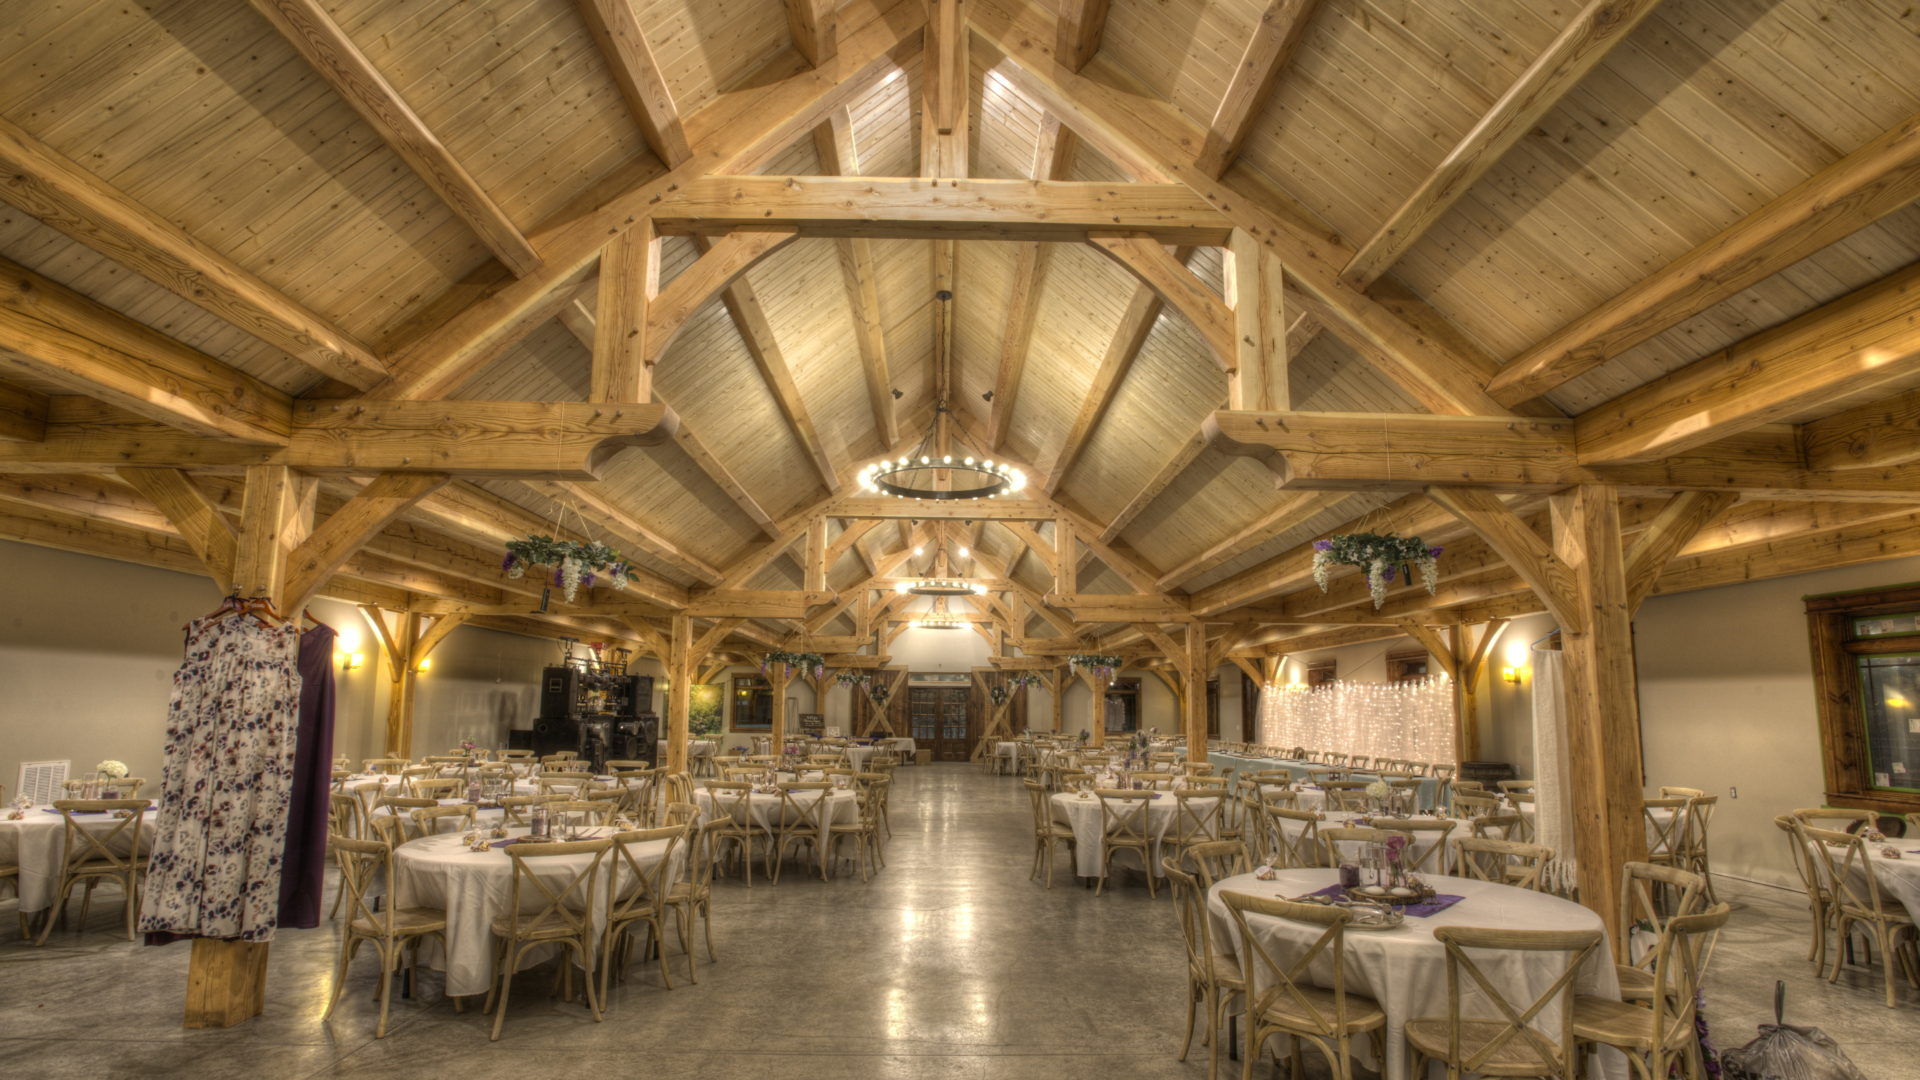 Timber Creek Weddings and Event Center